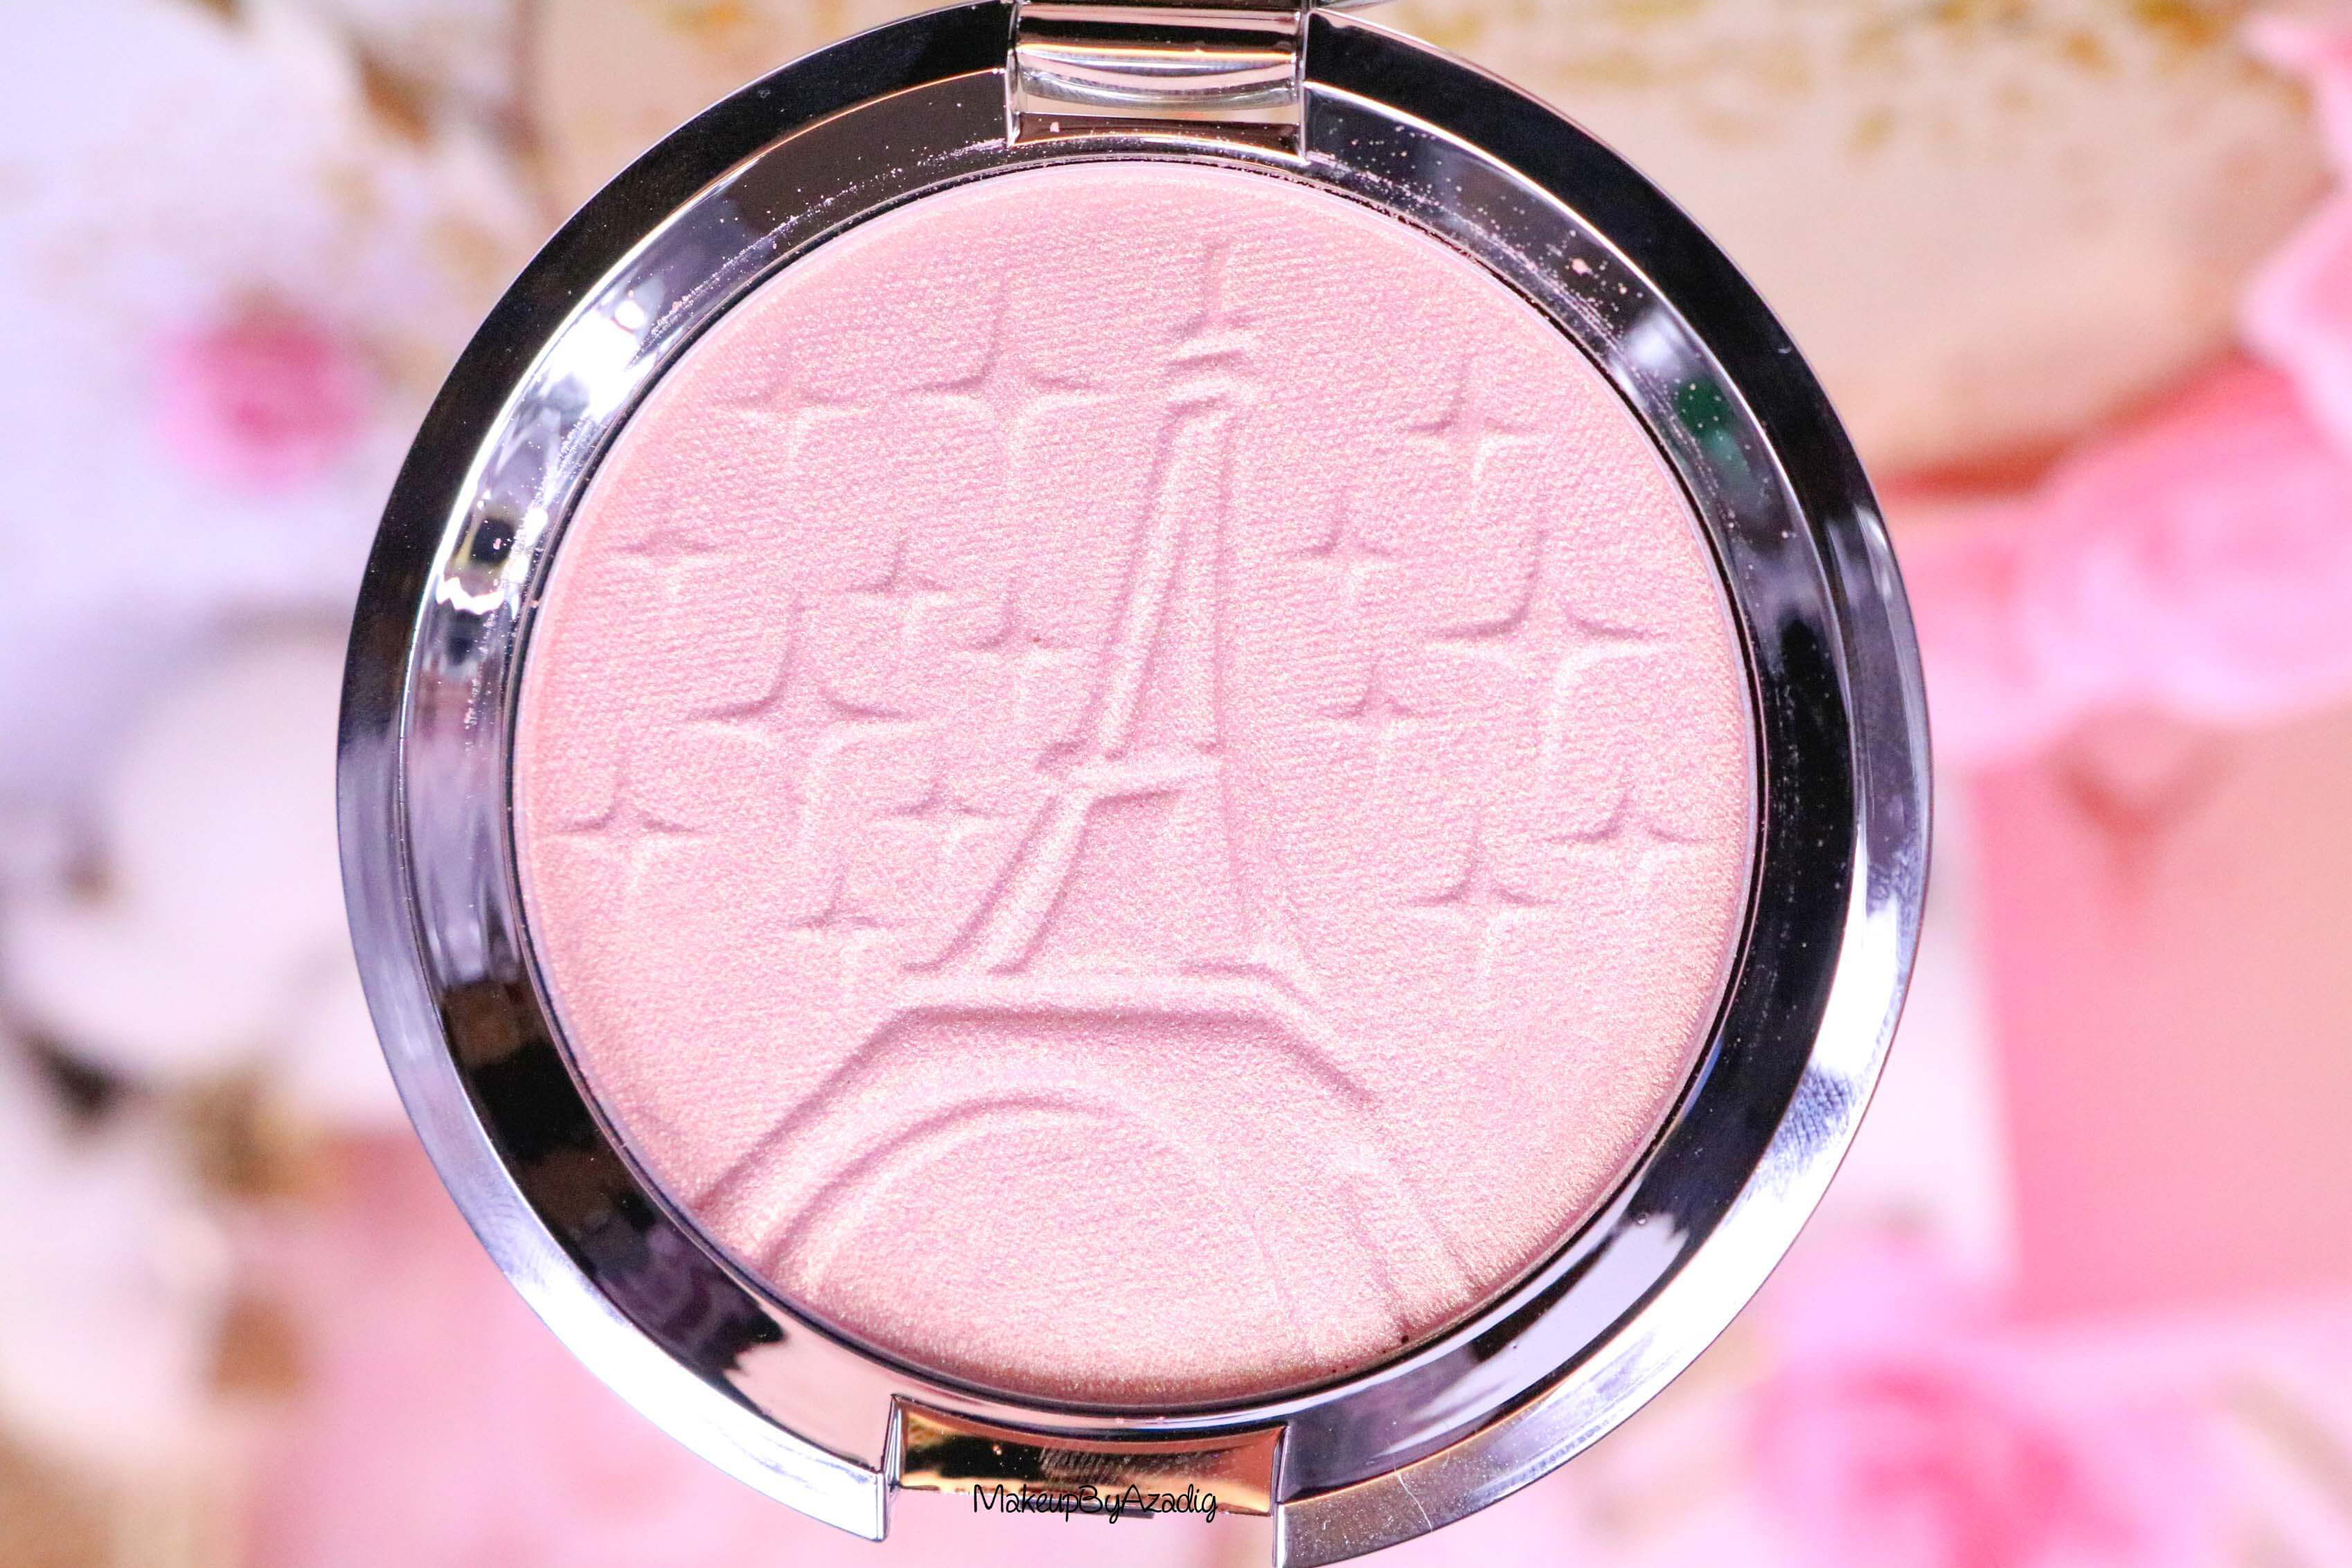 revue-highlighter-becca-sananas-parisian-lights-prix-avis-swatch-beccaxsananas-paris-youtuber-couleur